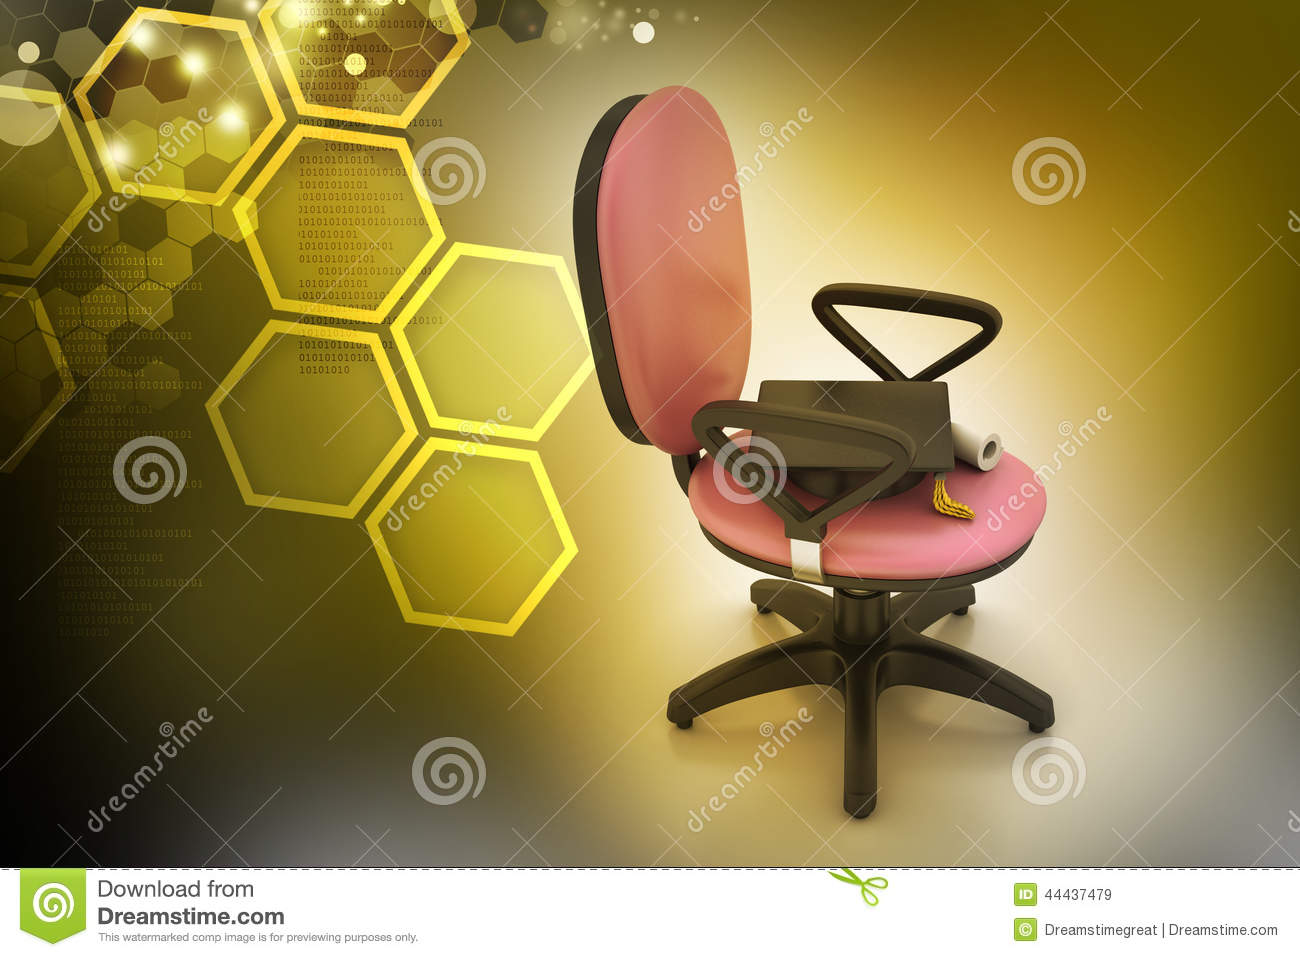 Graduation Hat In Office Chair Stock Photo Image 44437479